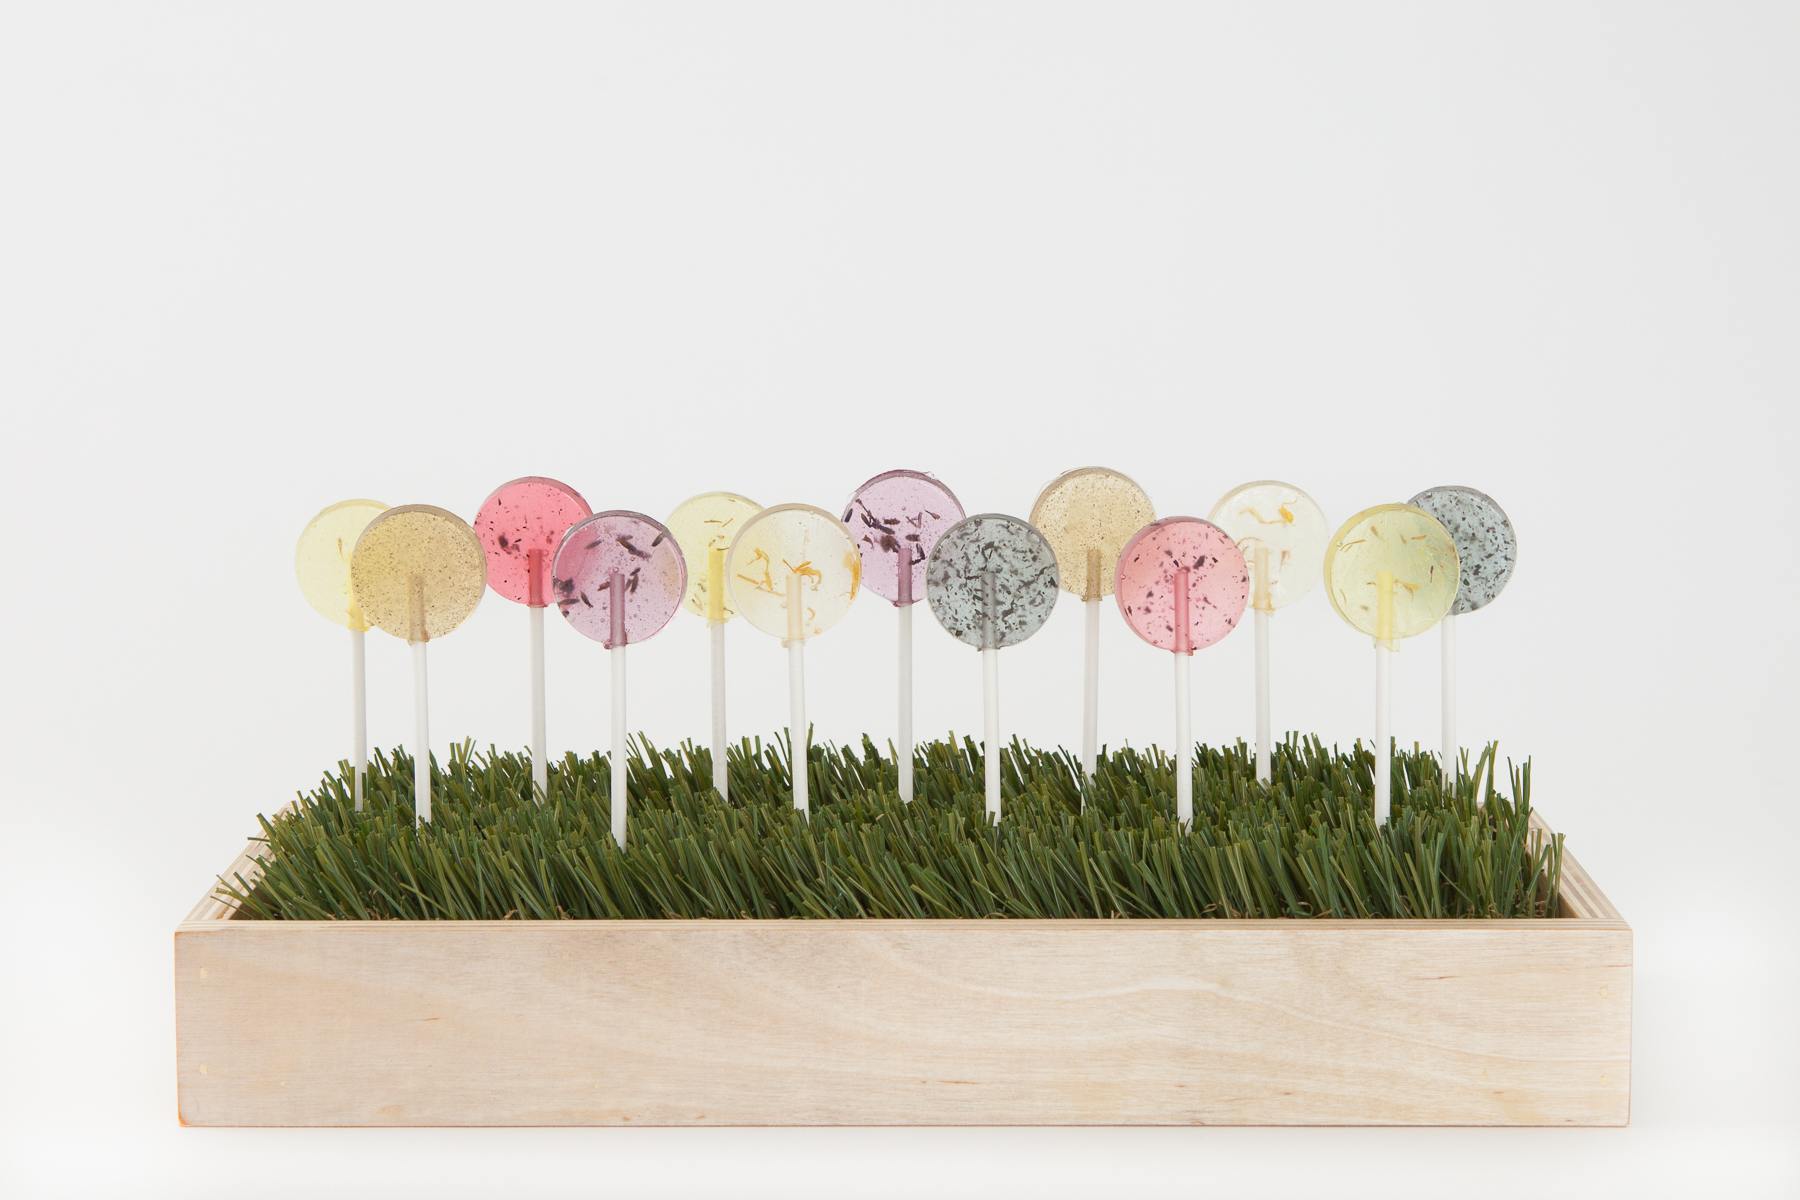 """Enjoy A line of yummy lollipops with flavors like vanilla-hibiscus, lavender-lemongrass, and peach-marigold that each beautifully distill their advertised flavors. Long-lasting, not too saccharine, and just plain cute..."" Read on by clicking on the image above."